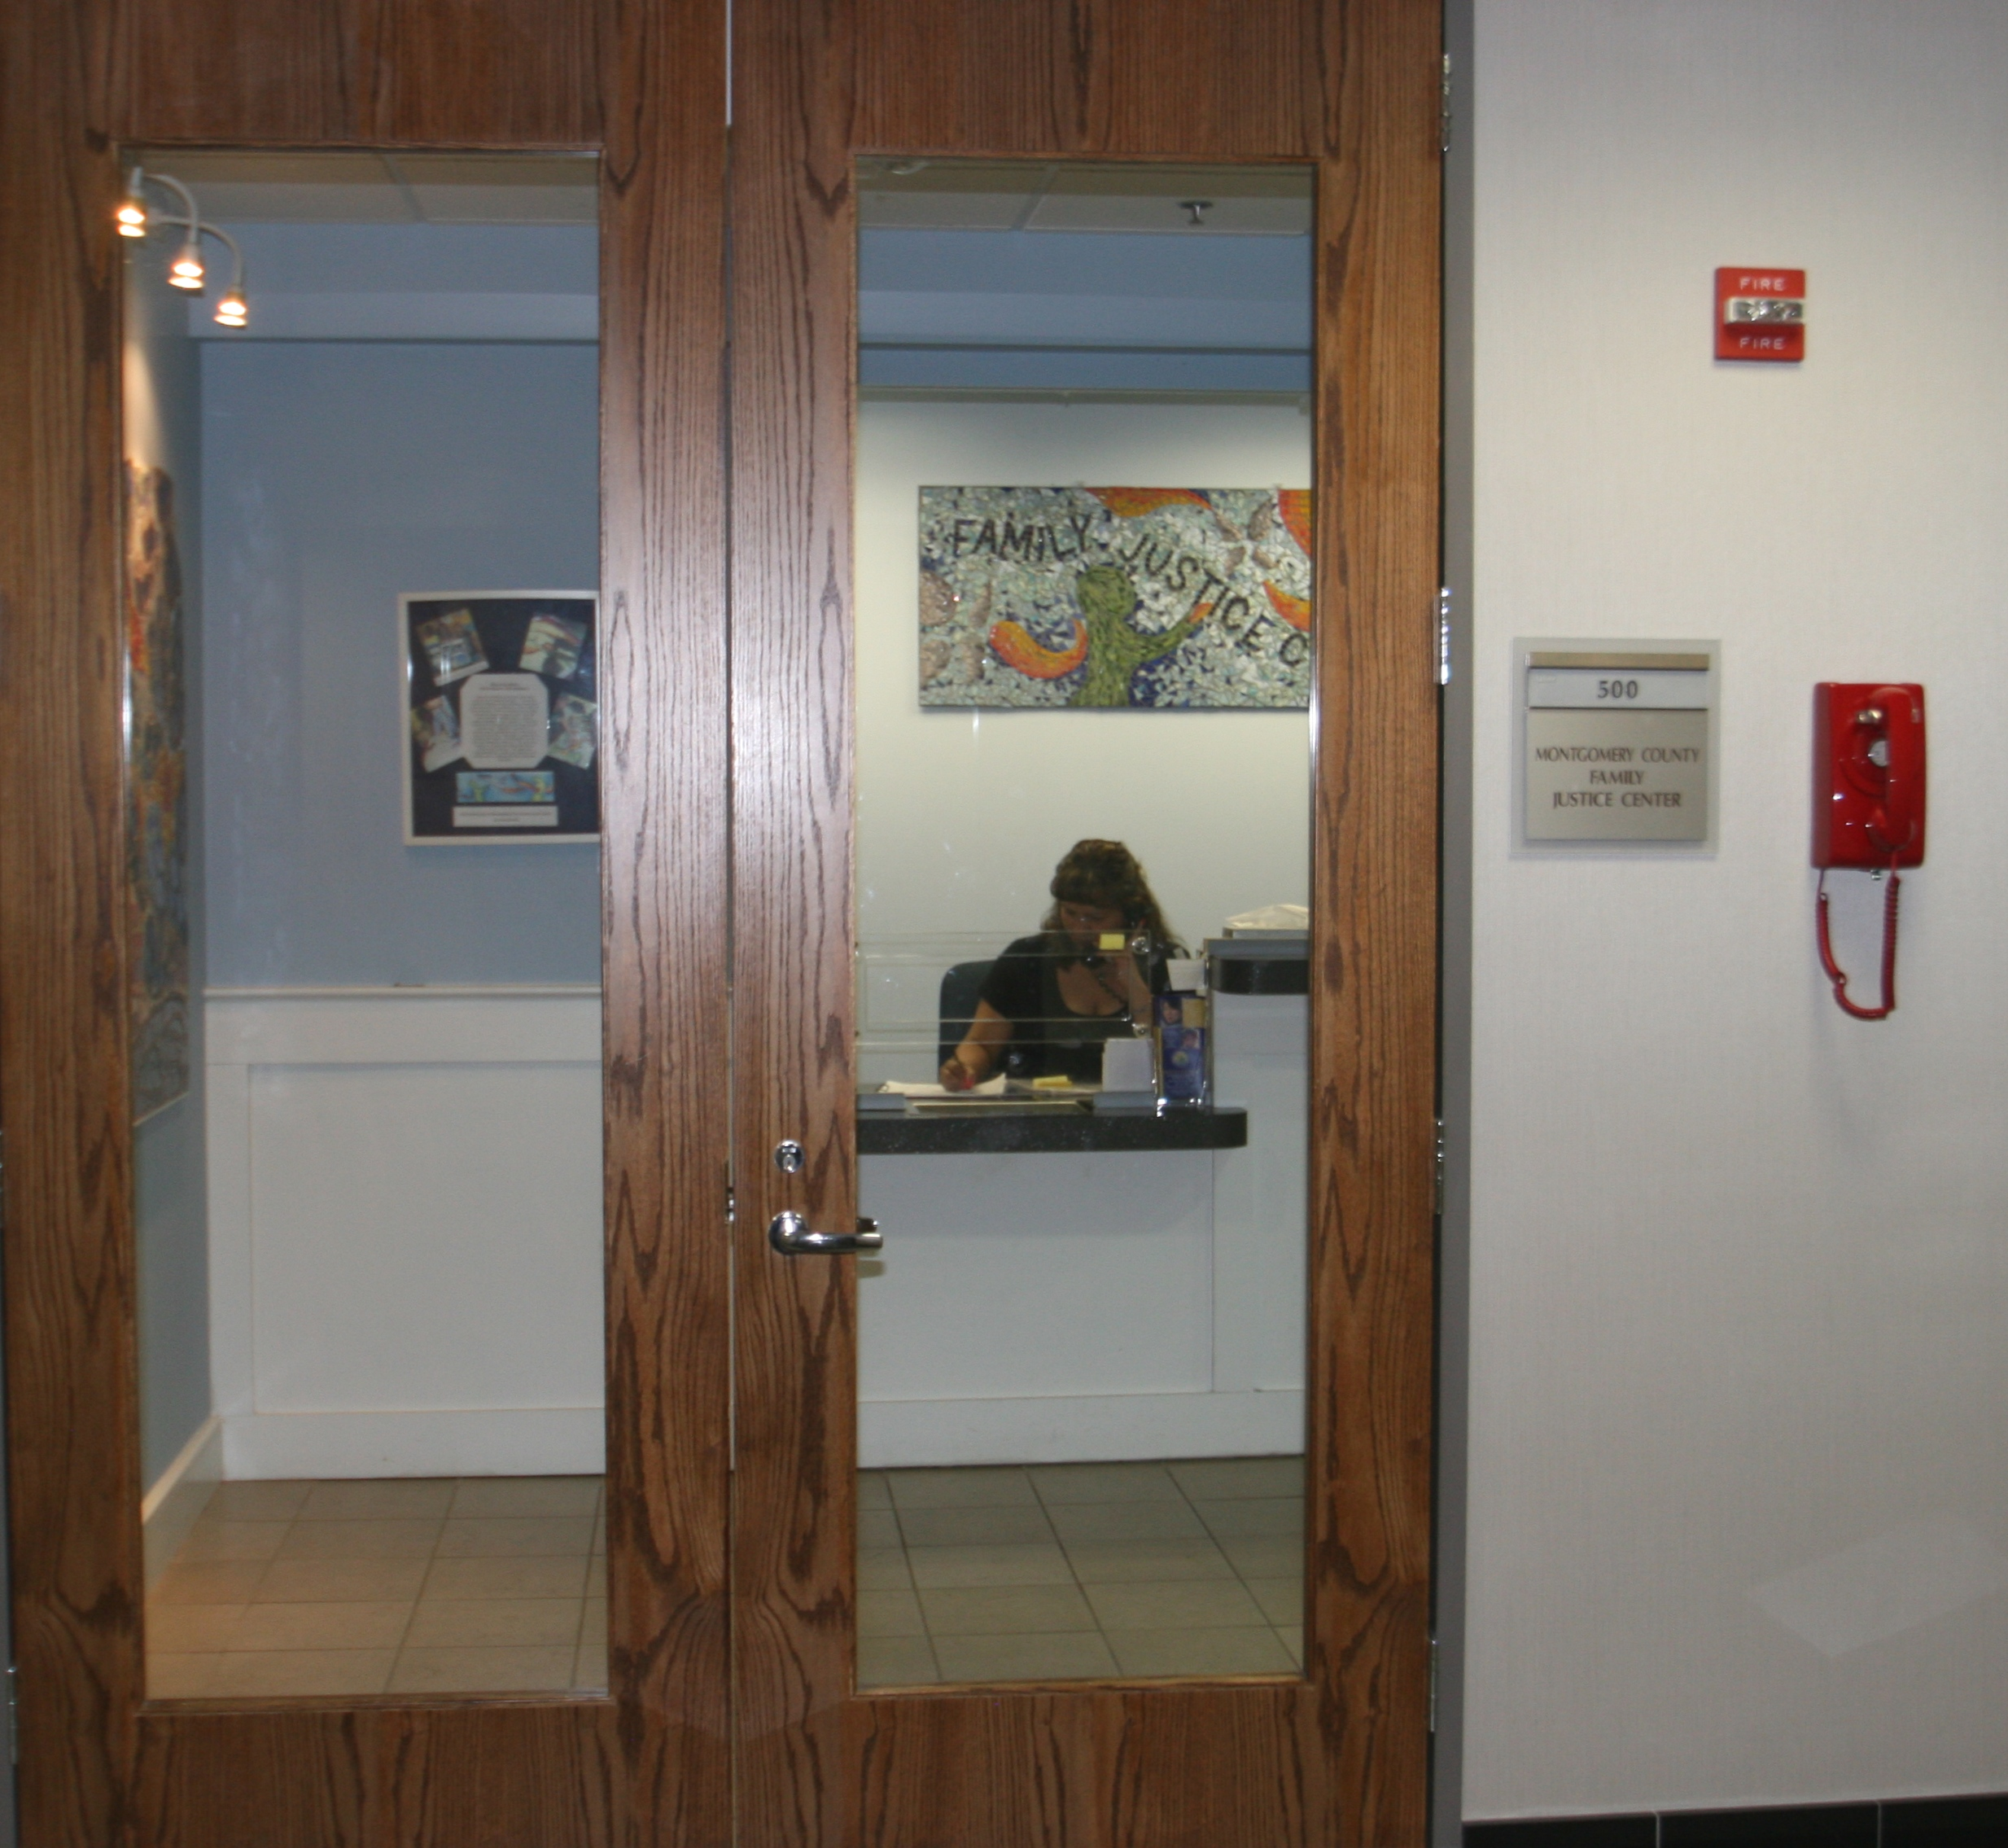 Entrance to Family Justice Center